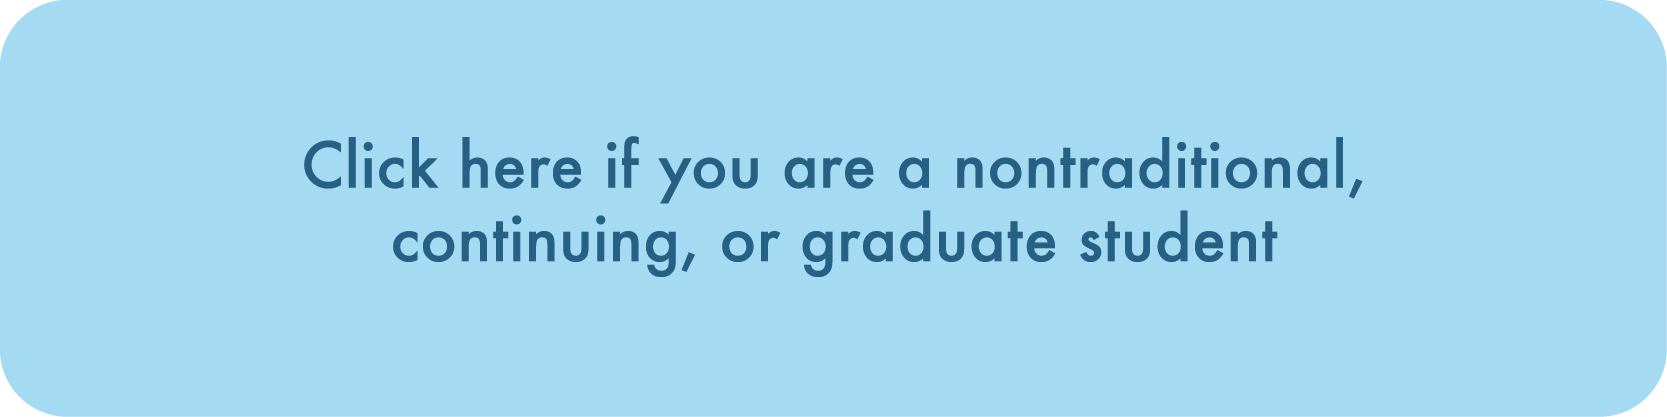 Click here if you are a nontraditional, continuing, or graduate student